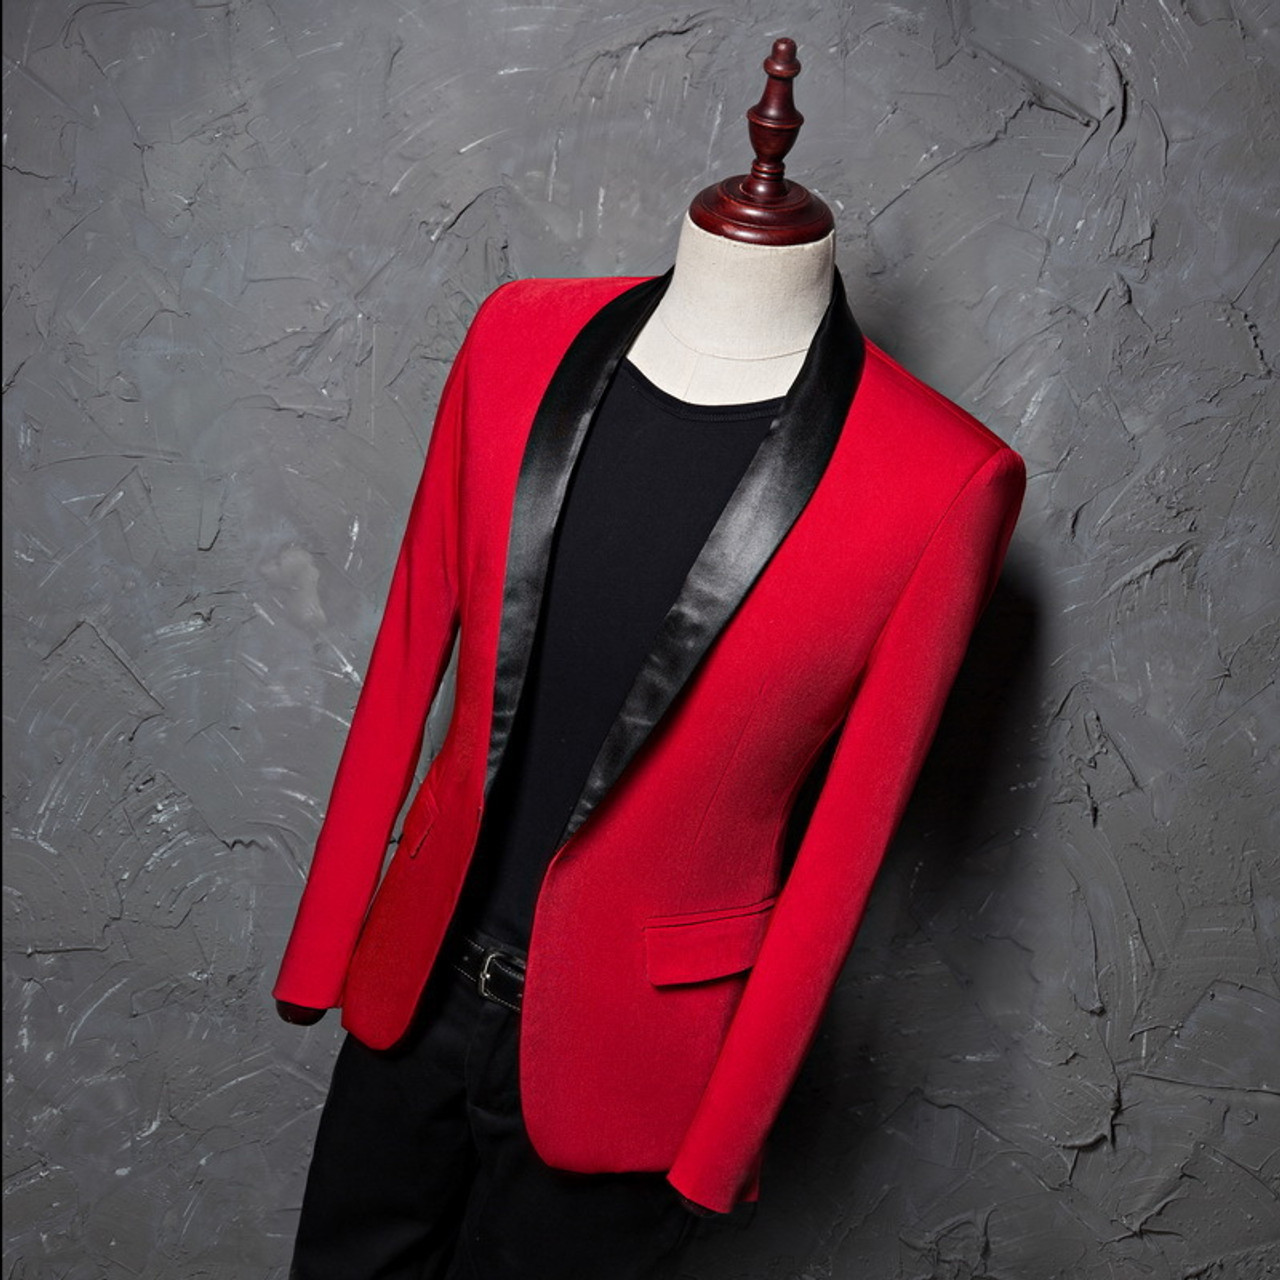 21aec8a456b2 ... PYJTRL Men's Red Shawl Collar Single Button Suits Jacket Wedding Party  Business Casual Blazer Coat Masculino ...